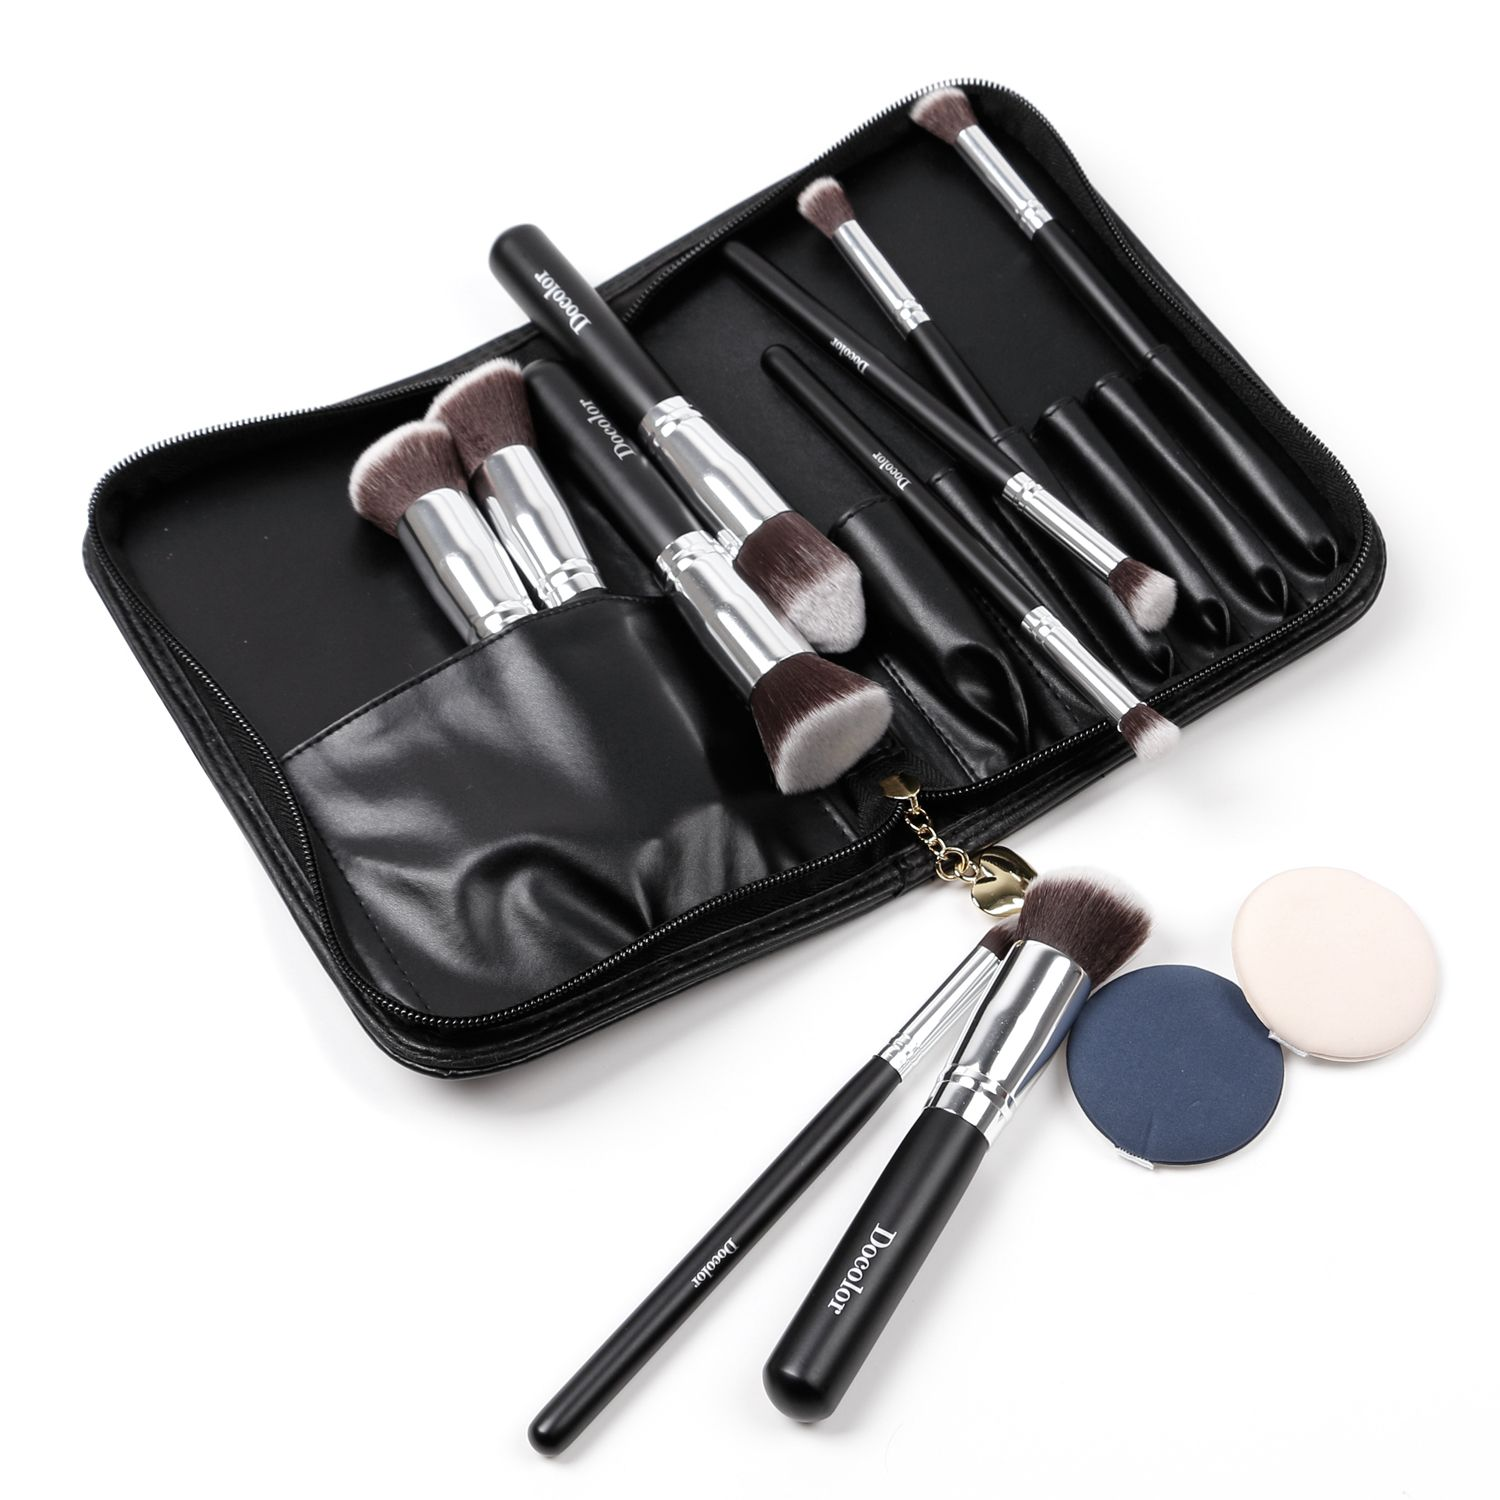 FBA Docolor® 10Pieces Synthetic Professional Makeup Brush